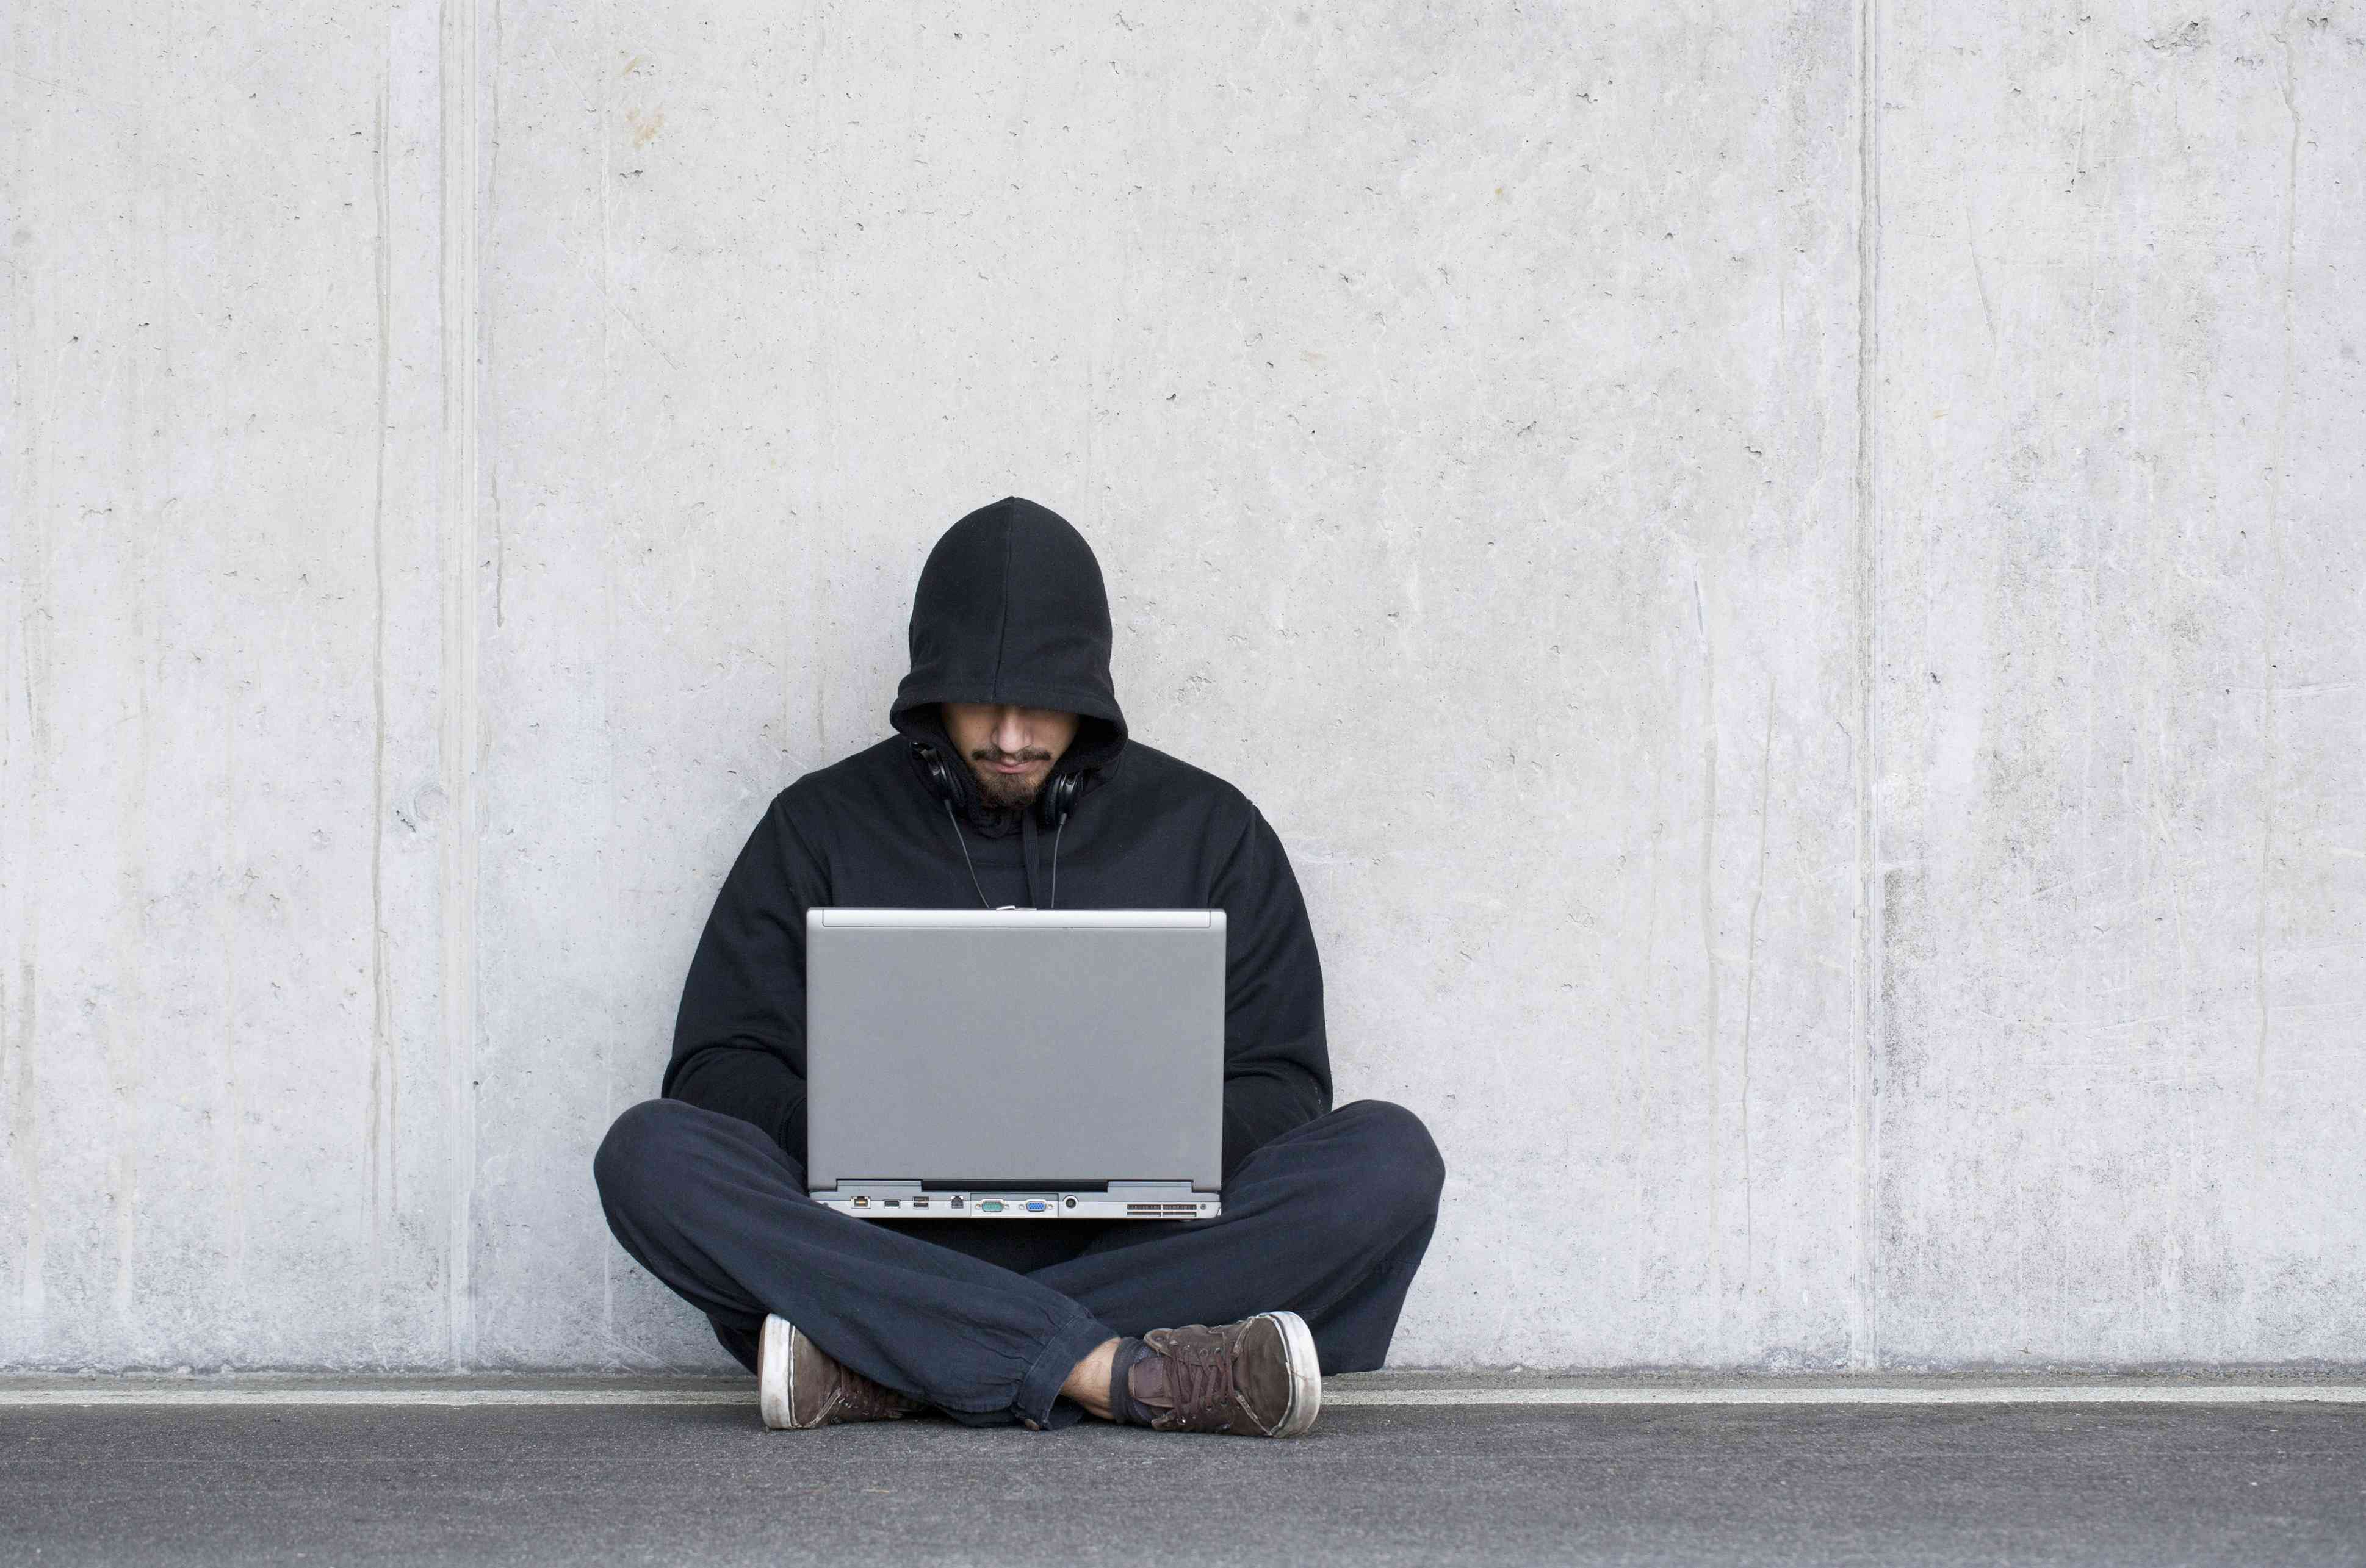 Person sitting against concrete wall wearing a hoodie and using a laptop.